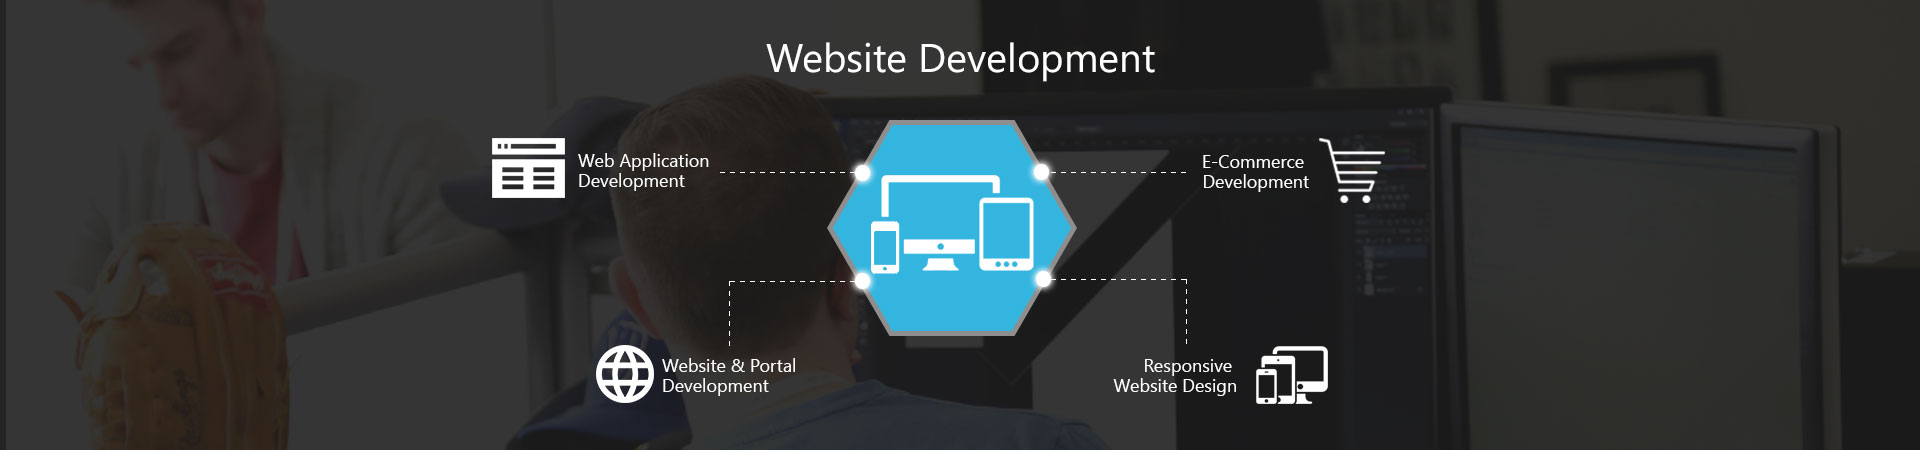 St. Petersburg Web Development